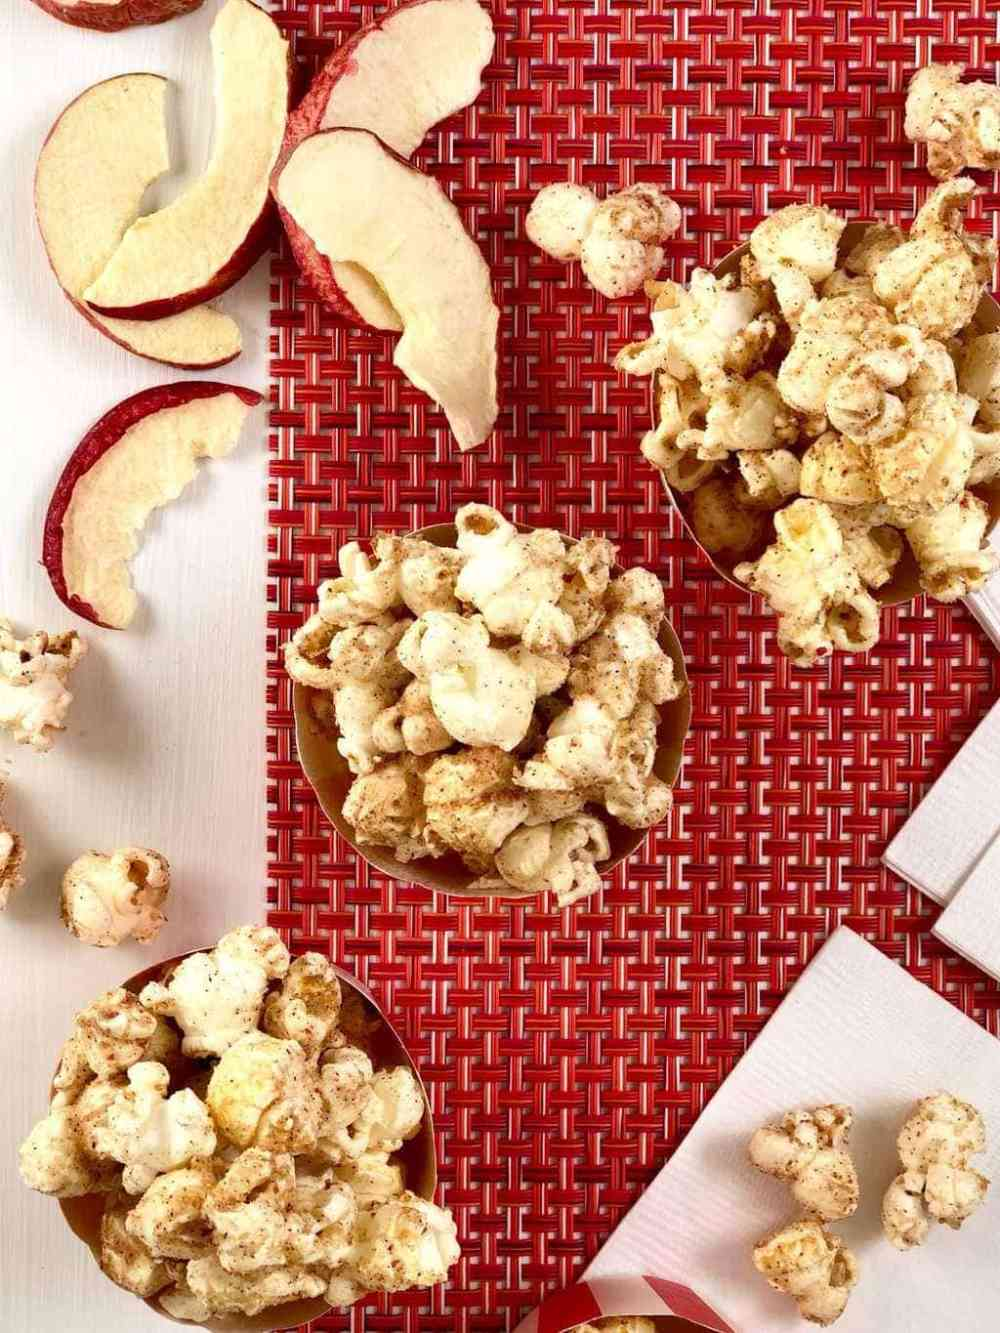 Apple cinnamon popcorn in red and white cups overhead